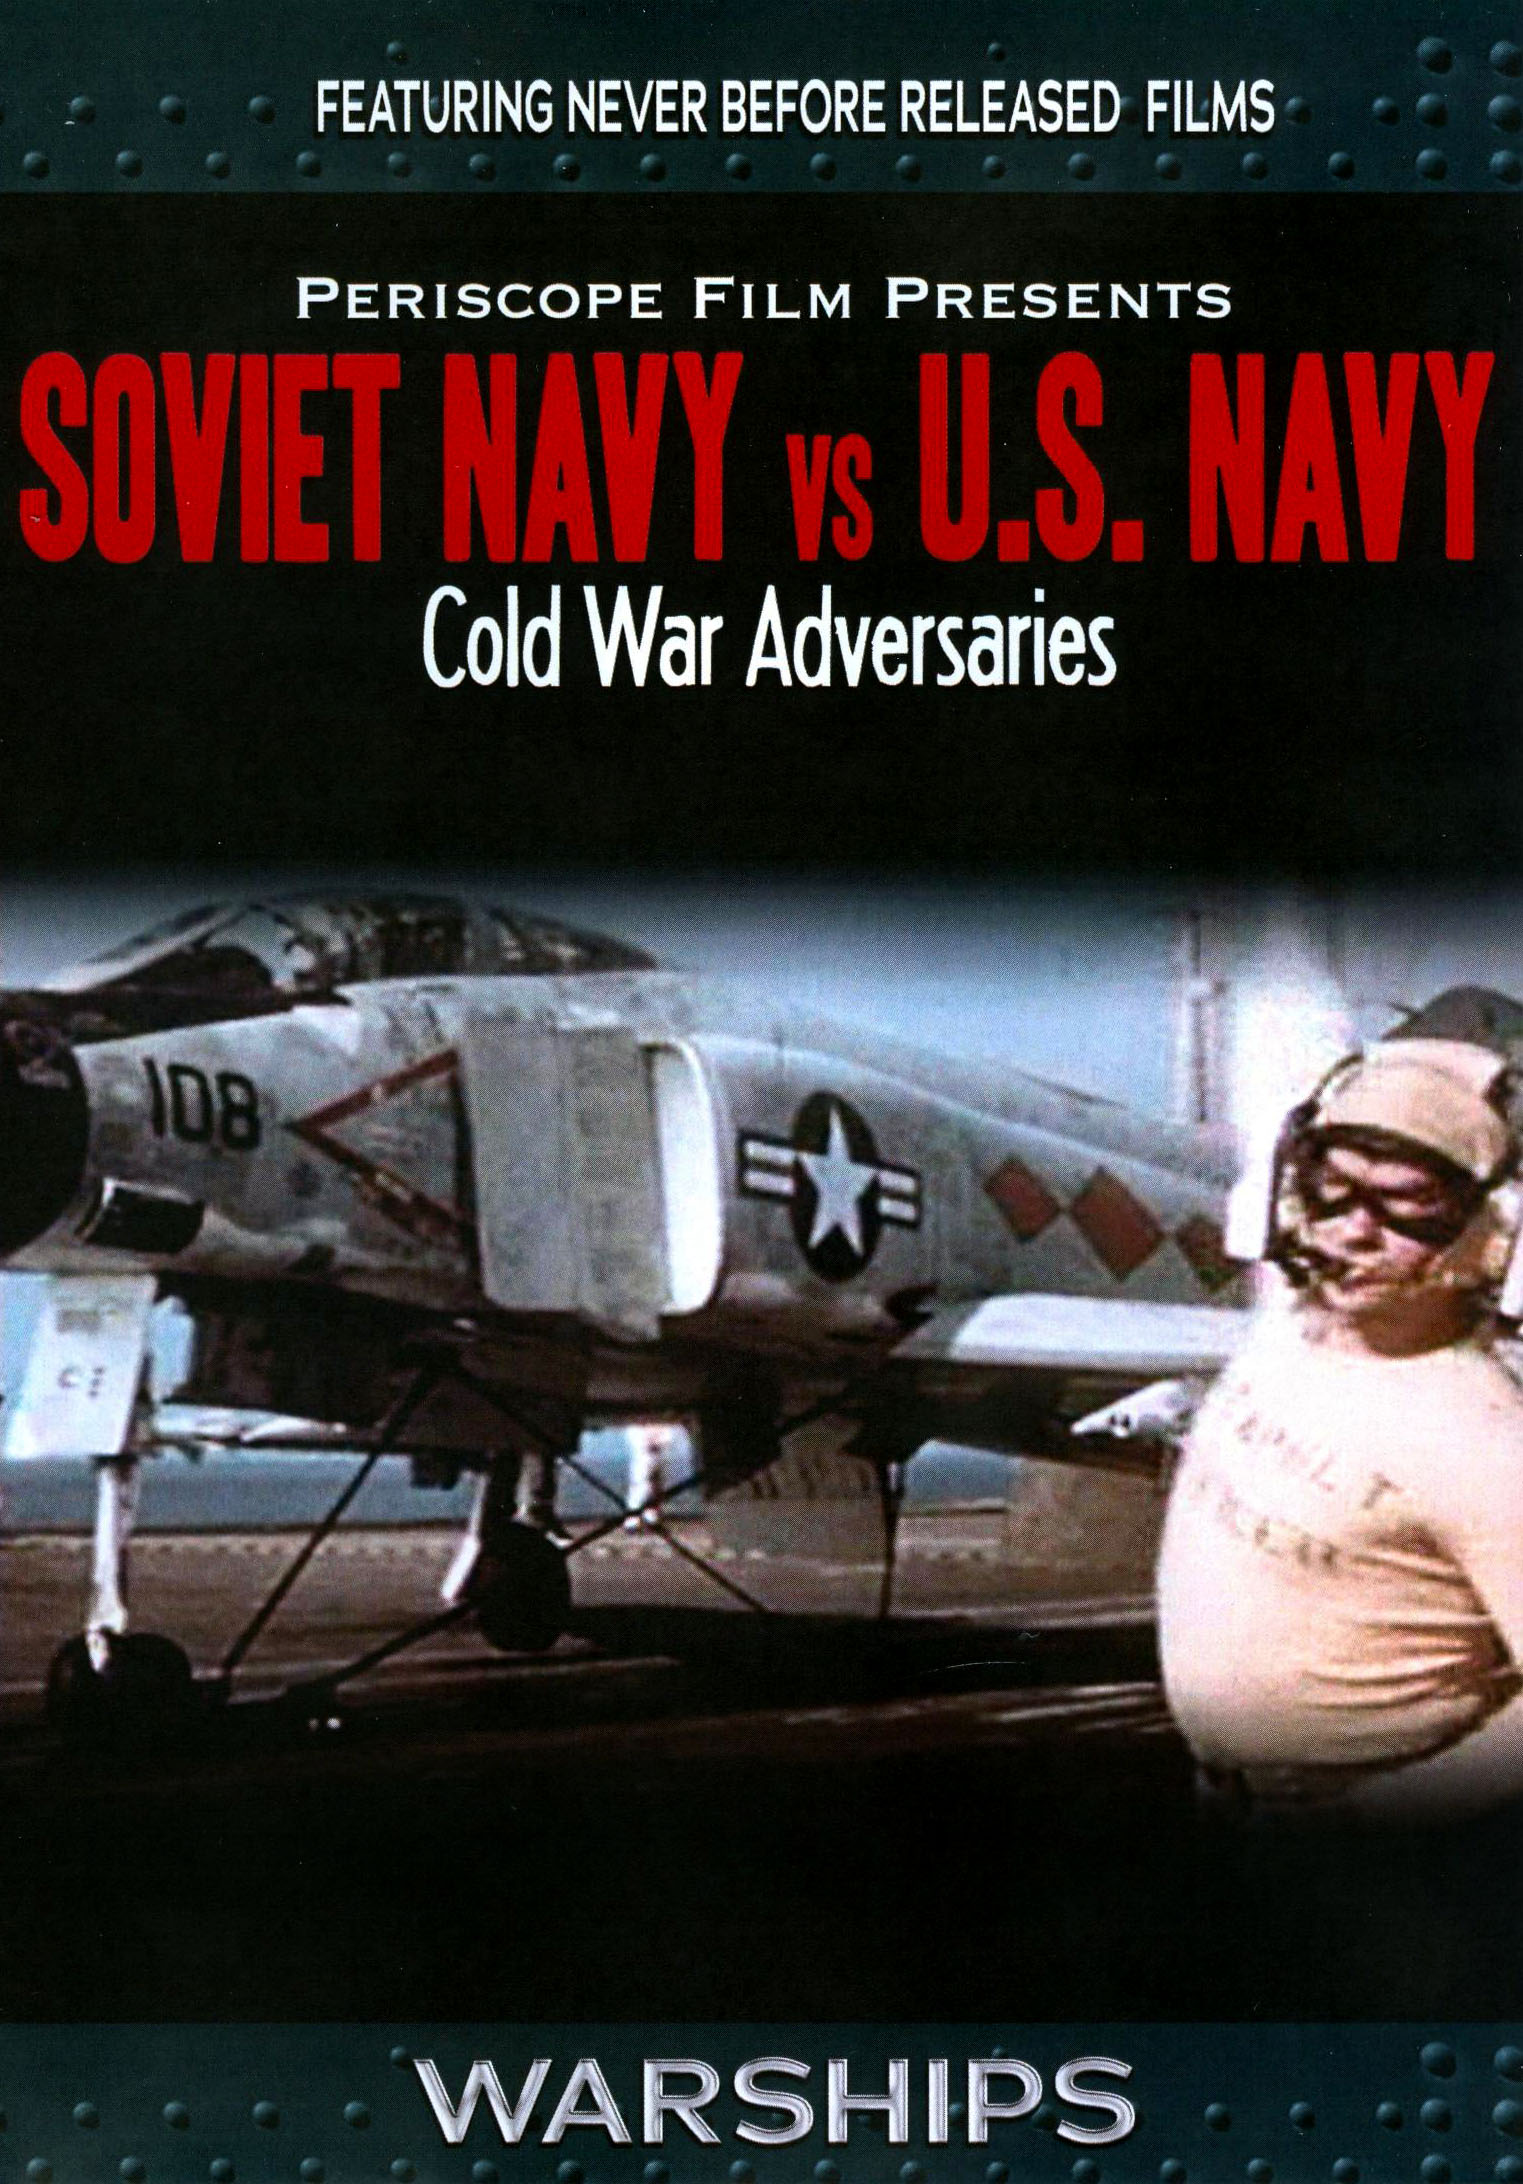 Soviet Navy Vs. U.S. Navy: Cold War Adversaries